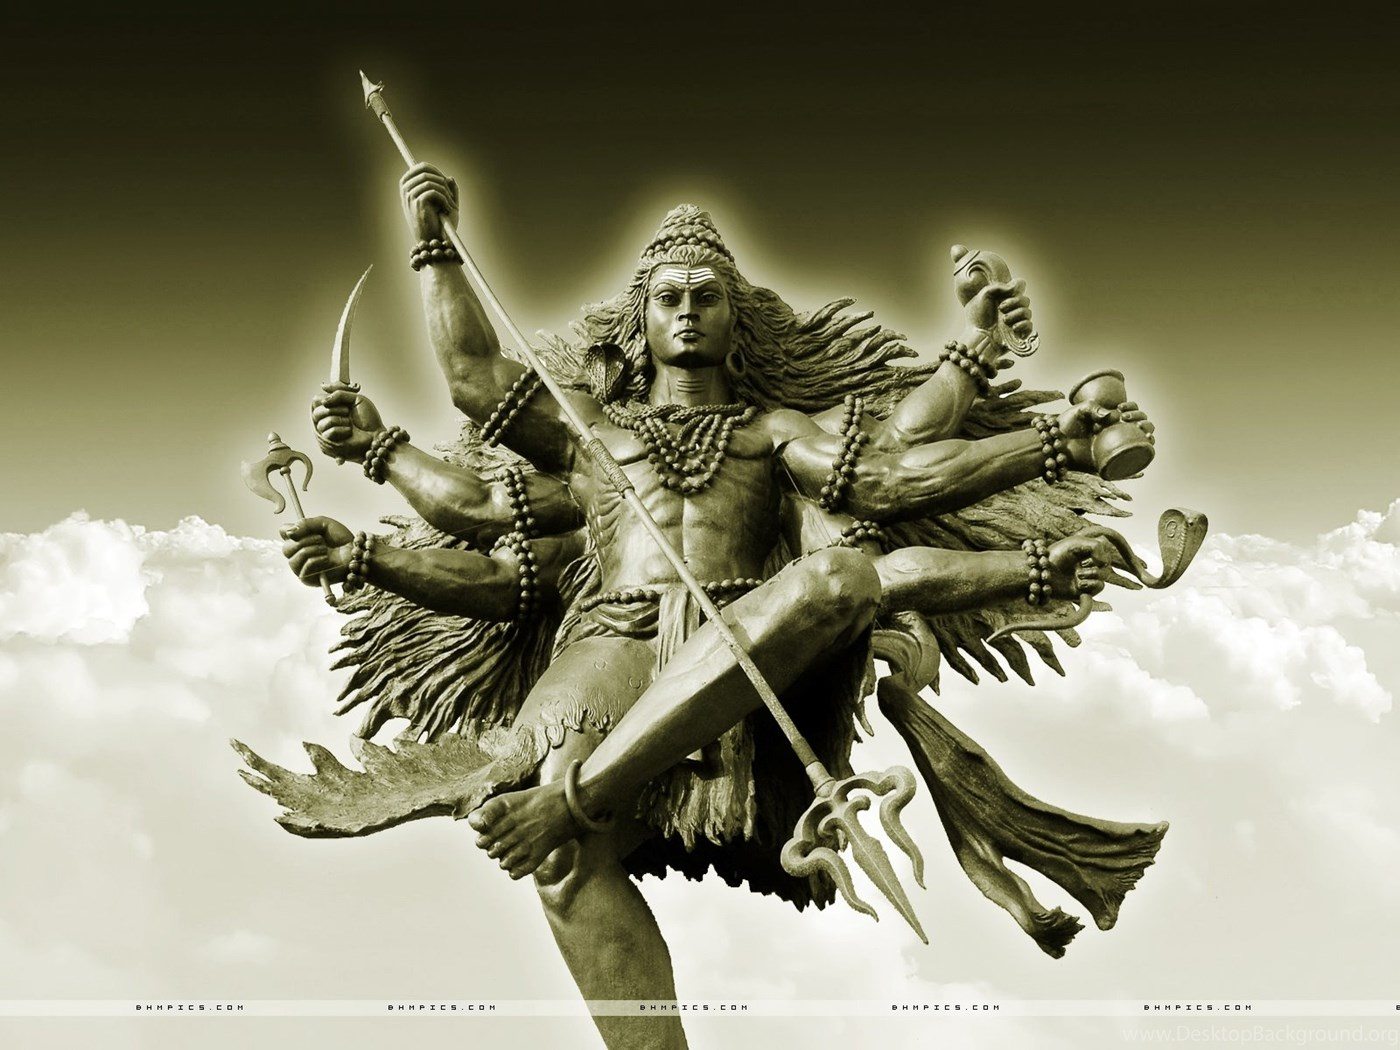 Wallpapers Lord Shiva Angry Photos Hd Kaal Bhairav 4 1920x1200 Desktop Background